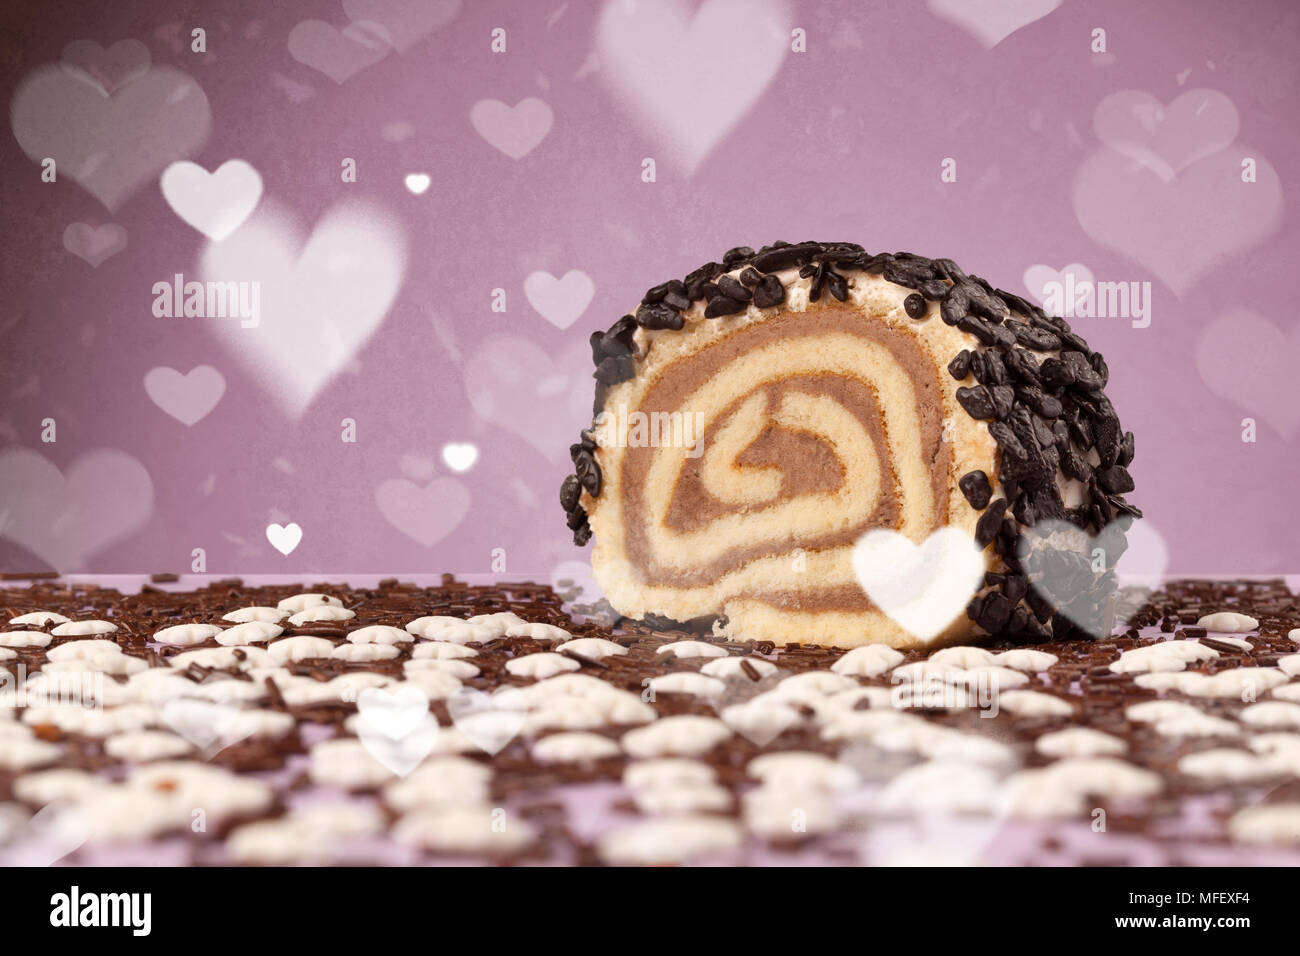 Delicious Pretty Party Cakes With Heart Shape Symbols On Colorful